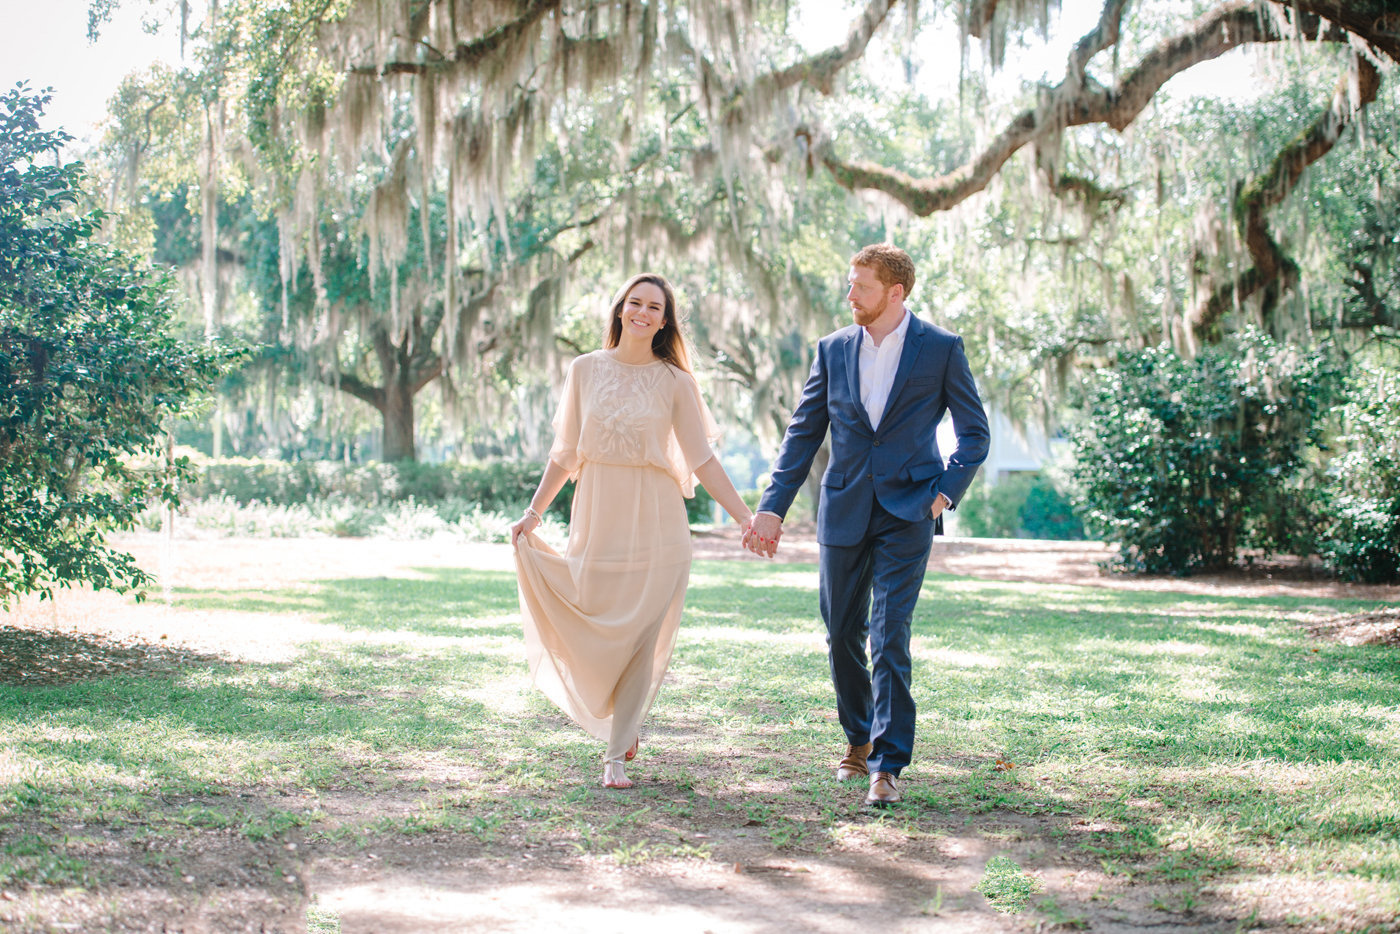 Engagement photos at Wachesaw Plantation in Murrells Inlet, SC